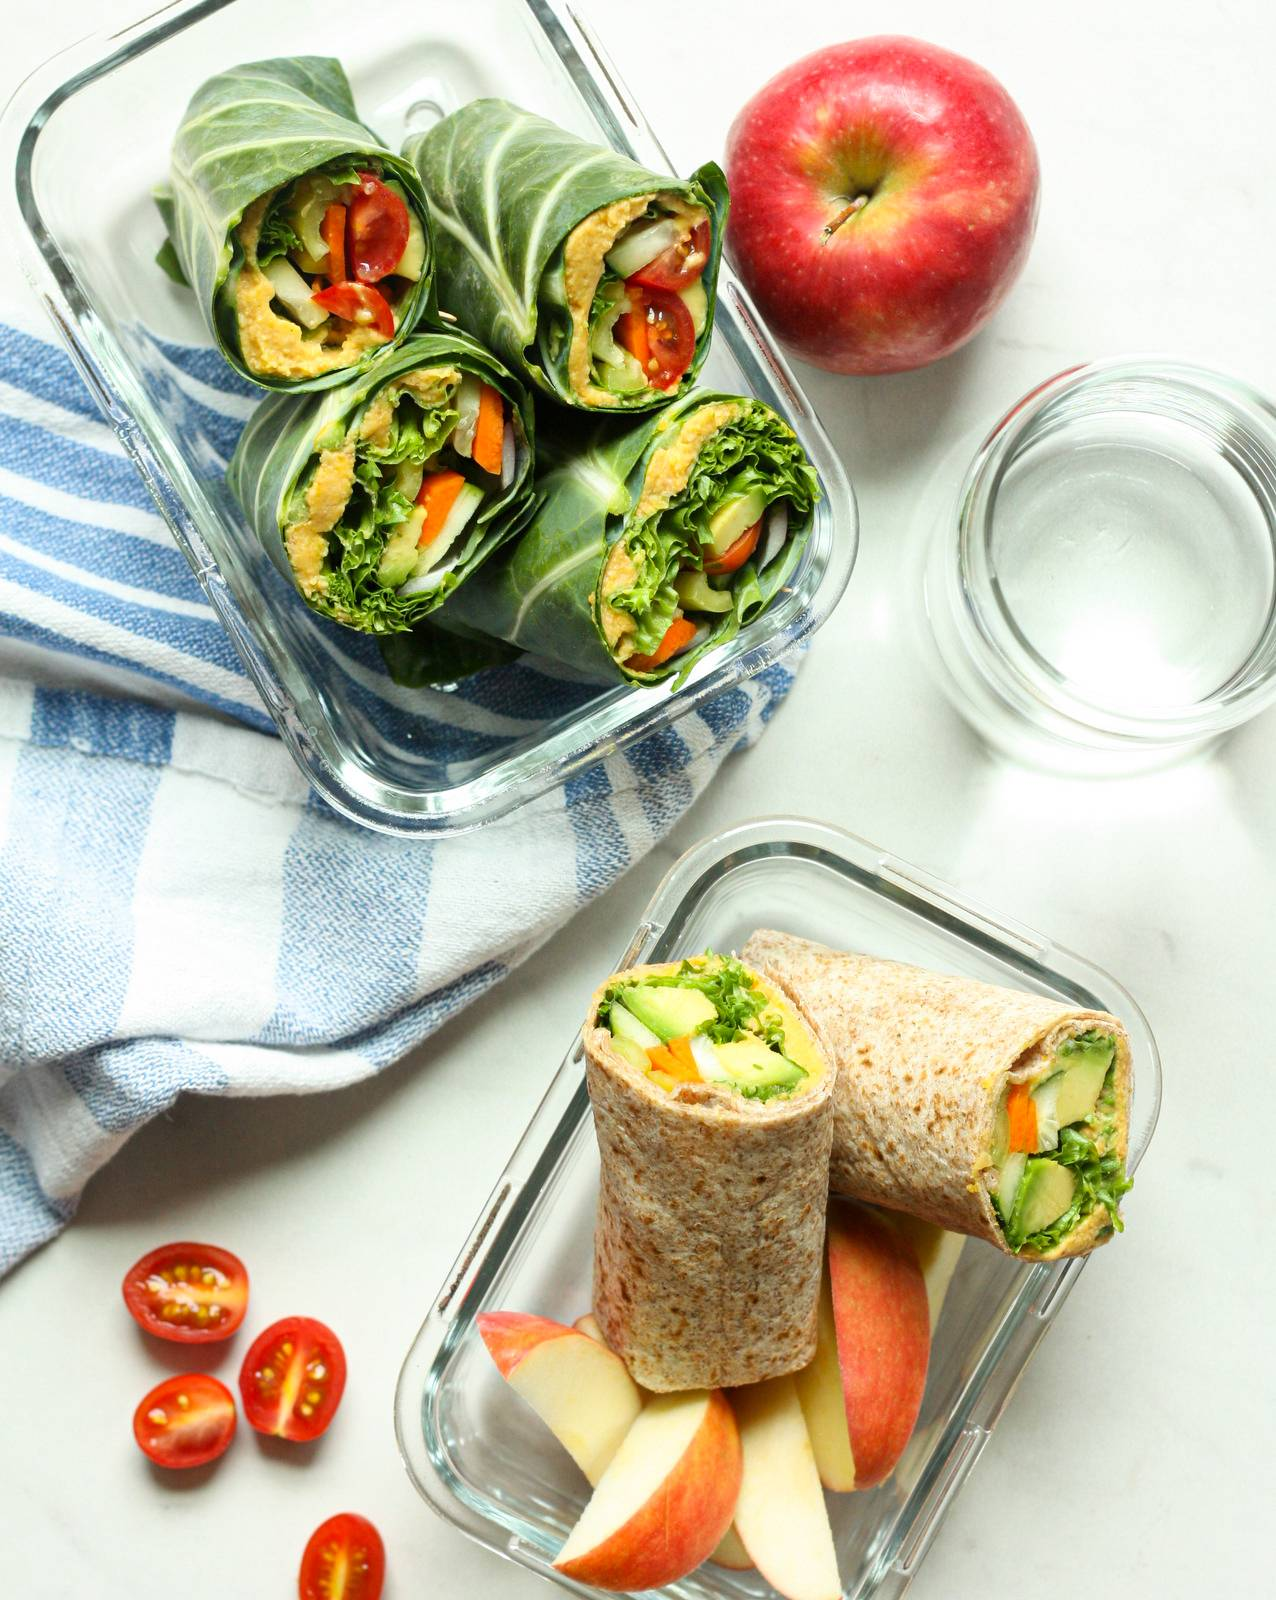 Crunchy Veg Wrap with Butternut Squash Hummus